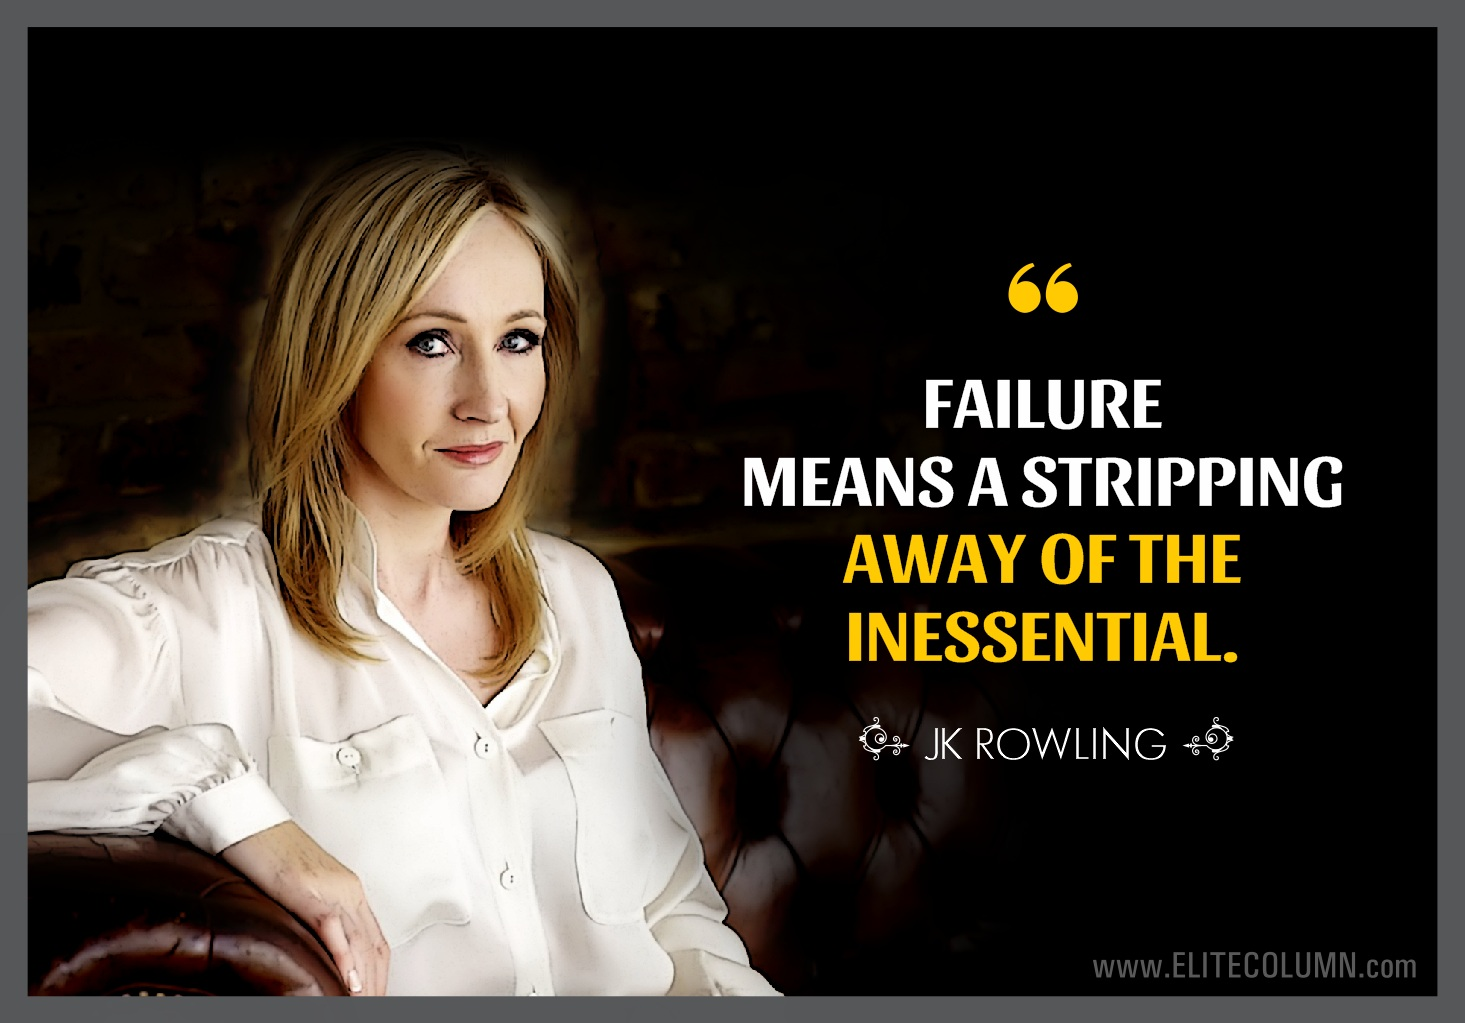 JK Rowling Quotes (9)